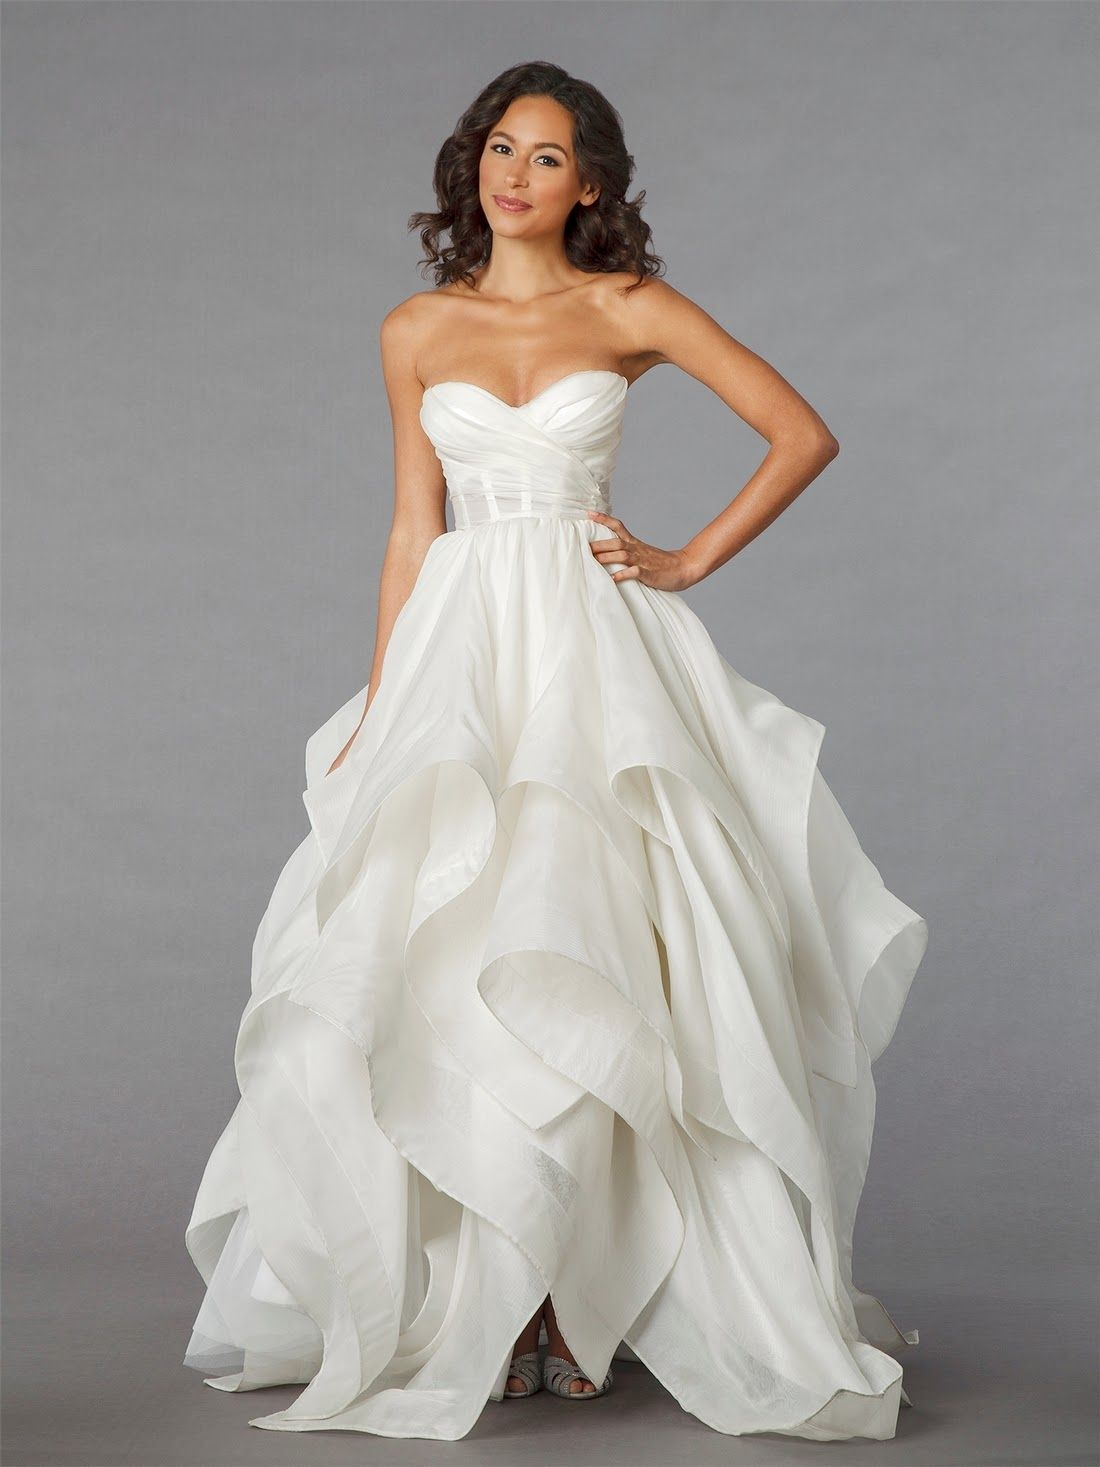 pnina tornai handkerchief skirt - Google Search | Wedding Attire ...